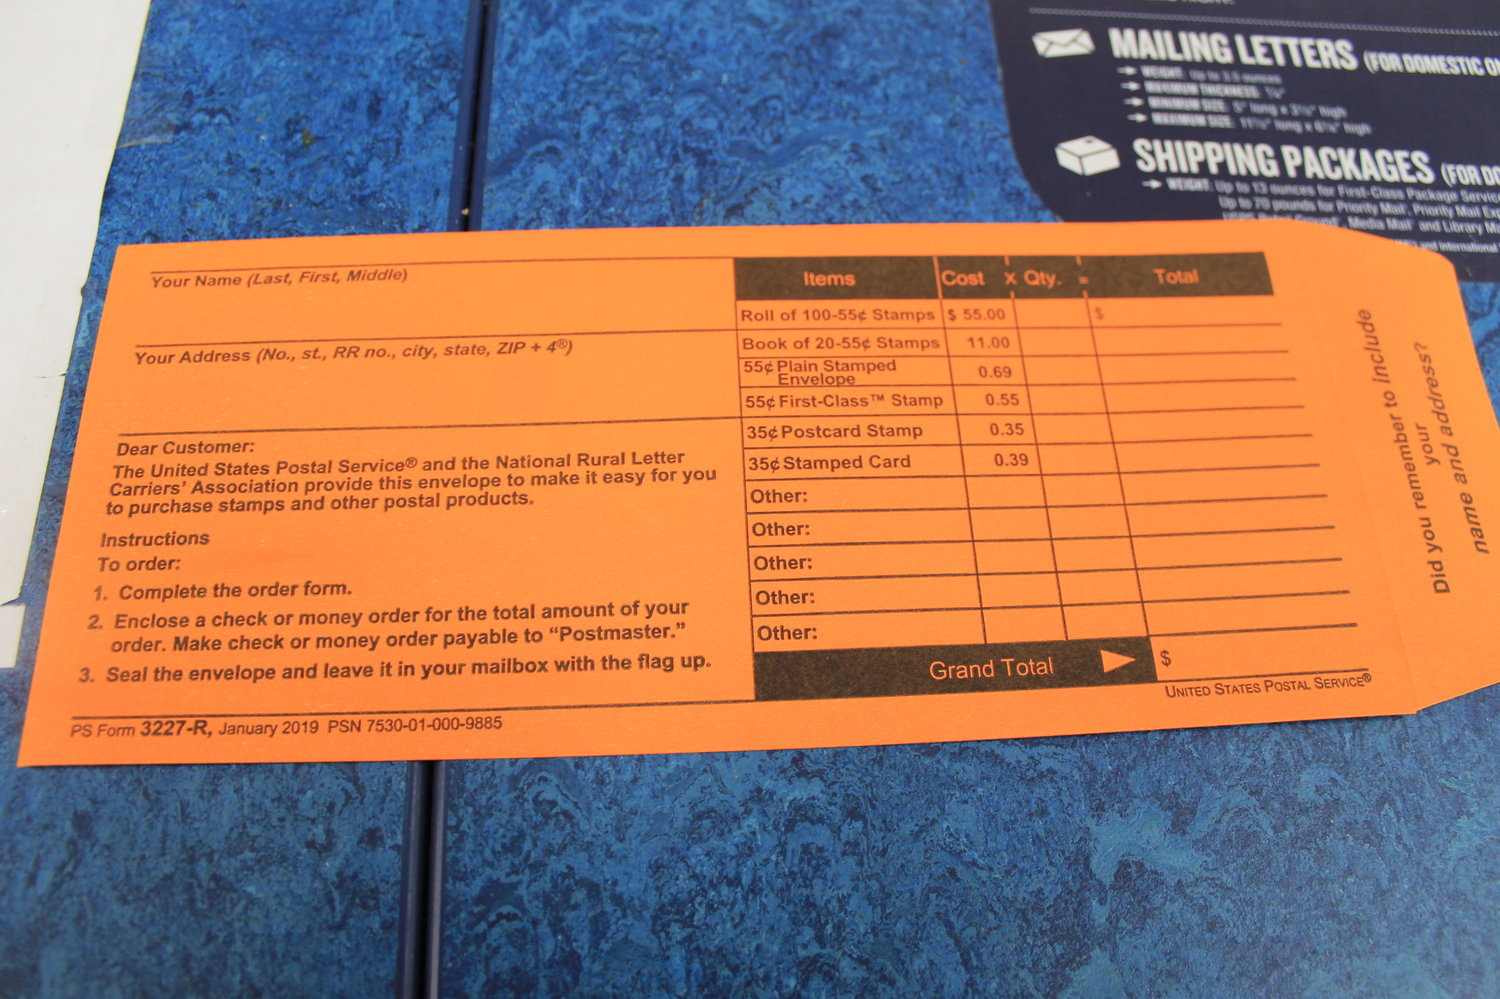 Stamp request envelopes are being distributed to cut down on traffic in the lobby of local post offices.